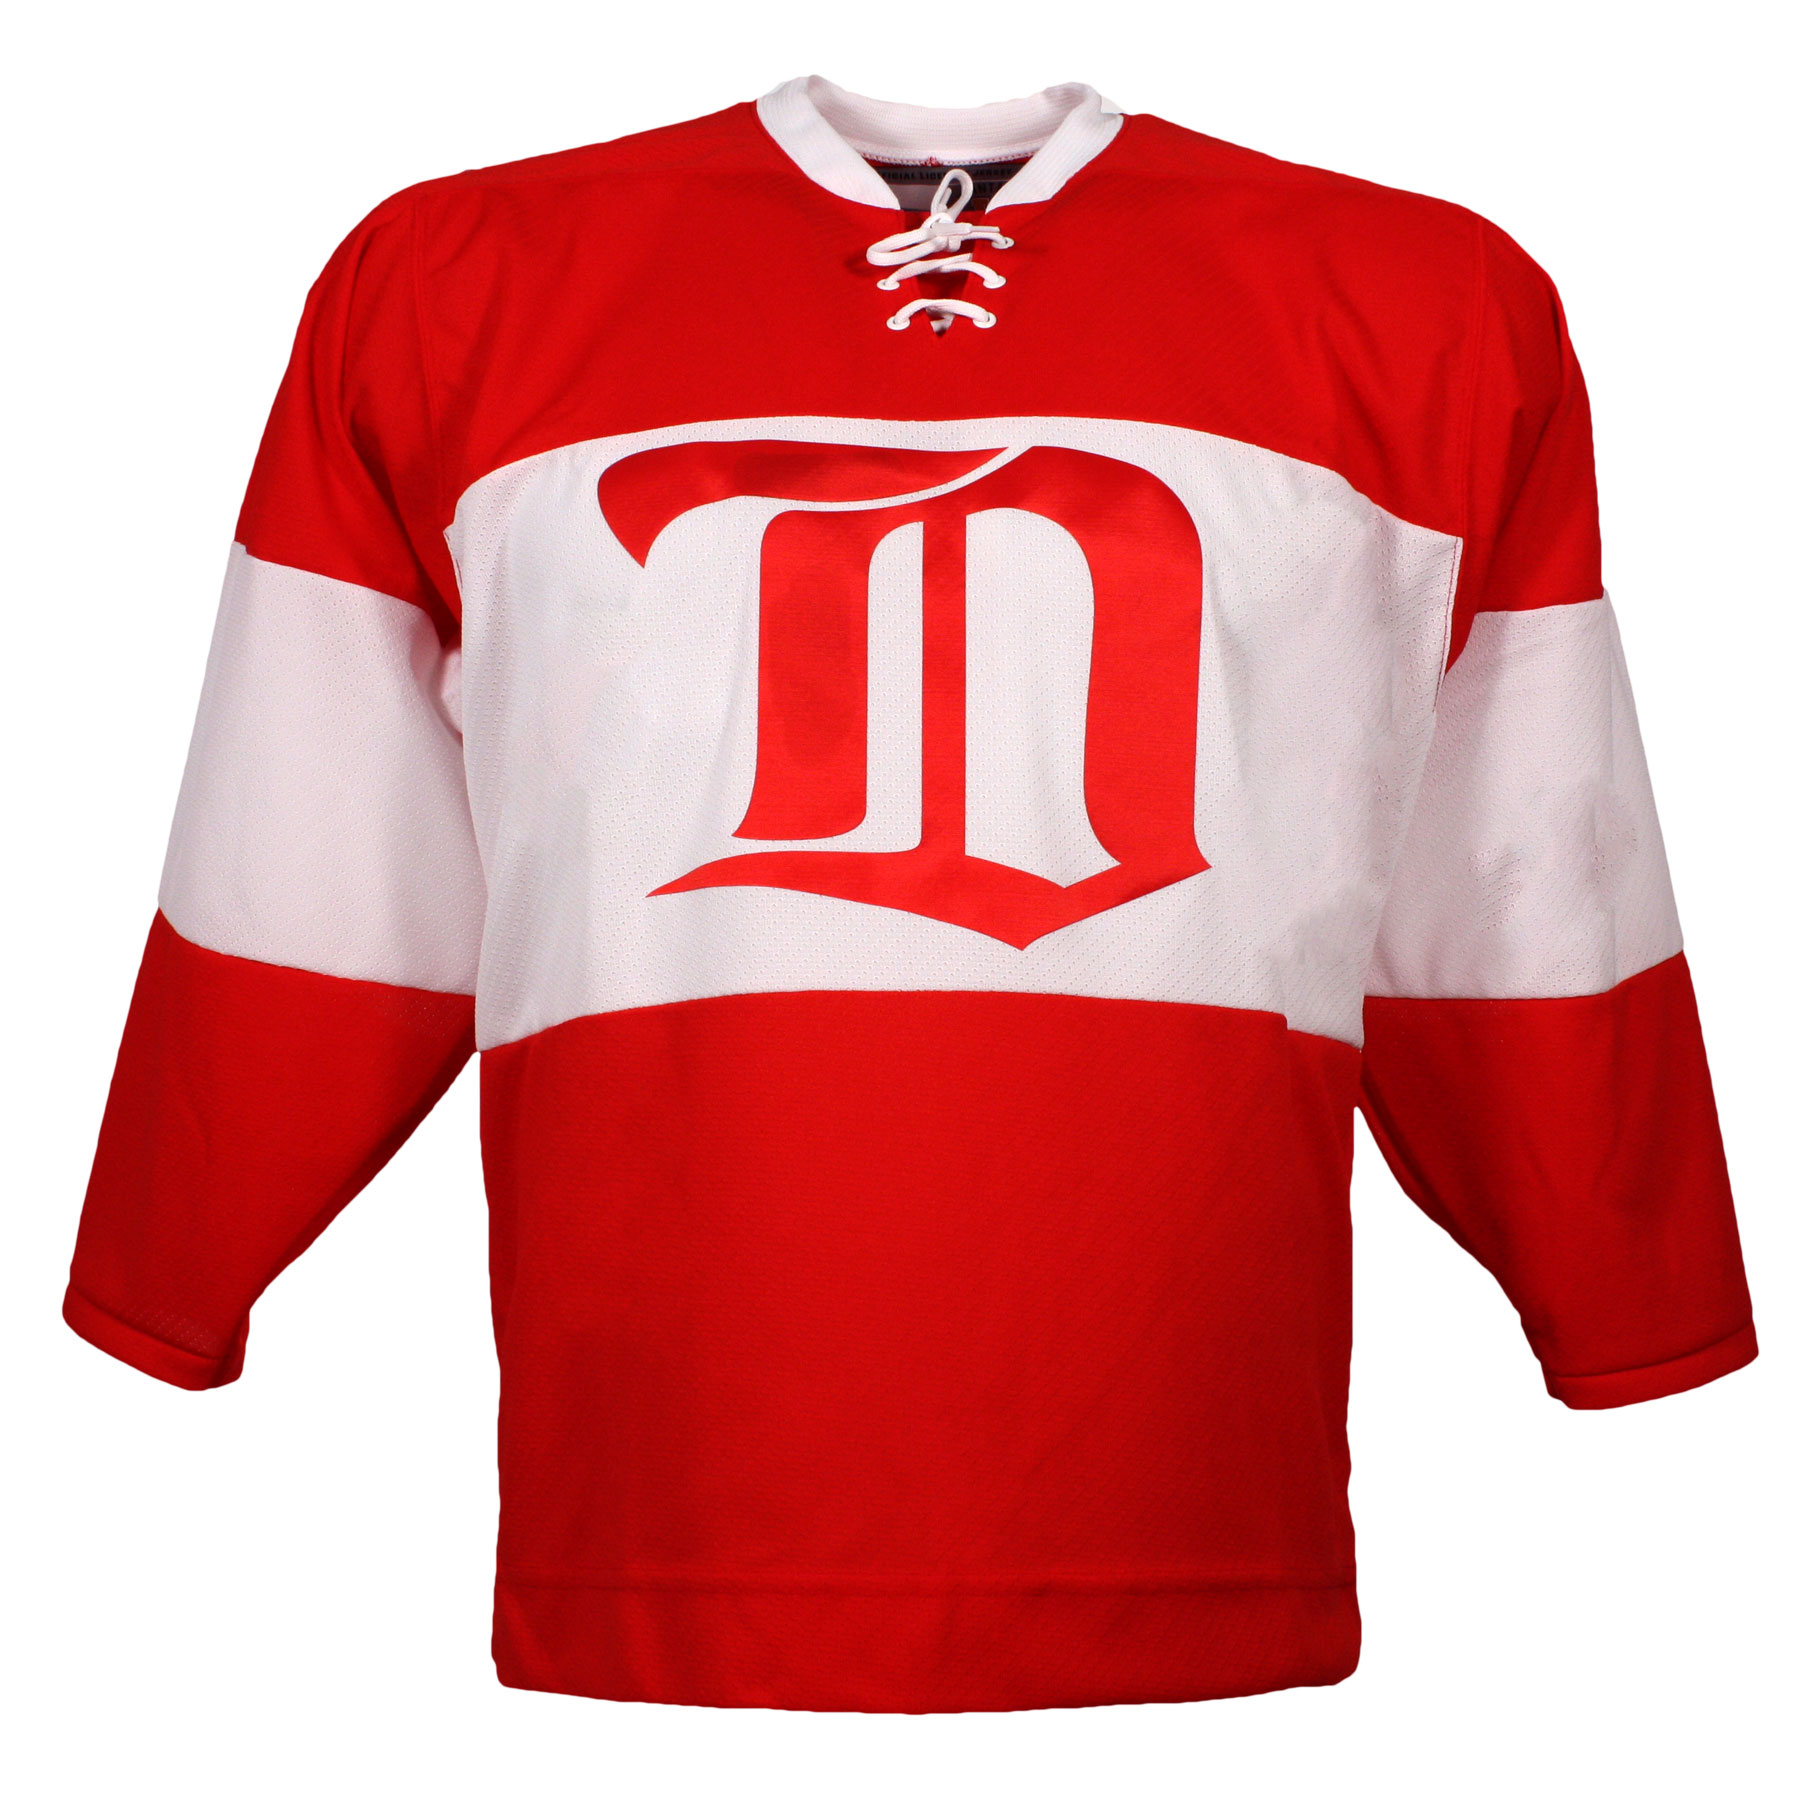 Detroit Red Wings Vintage Replica Jersey 1926 (Away) - CCM - image 1 of  zoomed image 922f43f3960